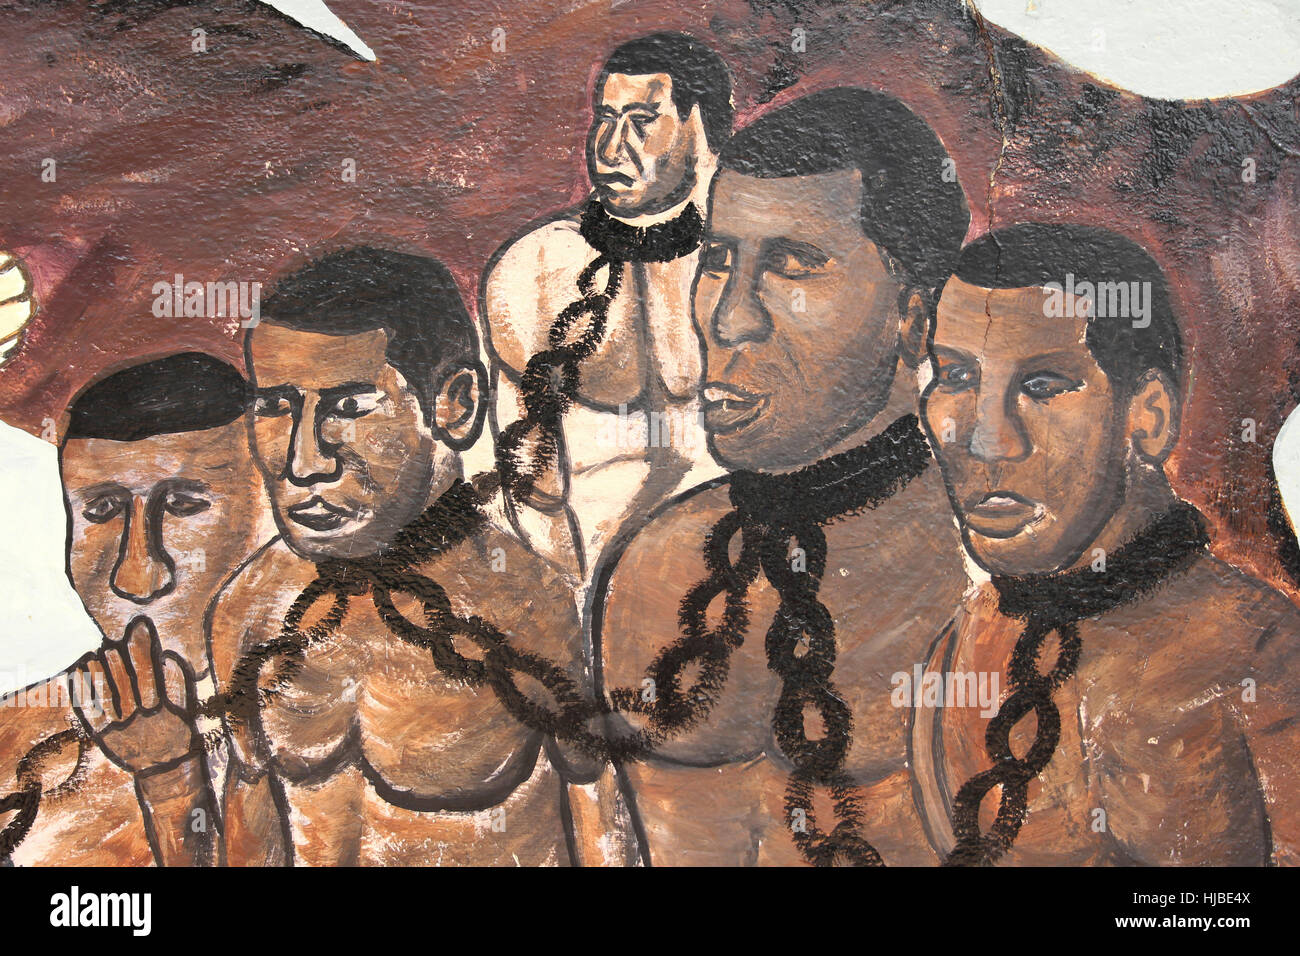 A Mural Depicting Slaves Assin Manso, Ghana - Stock Image